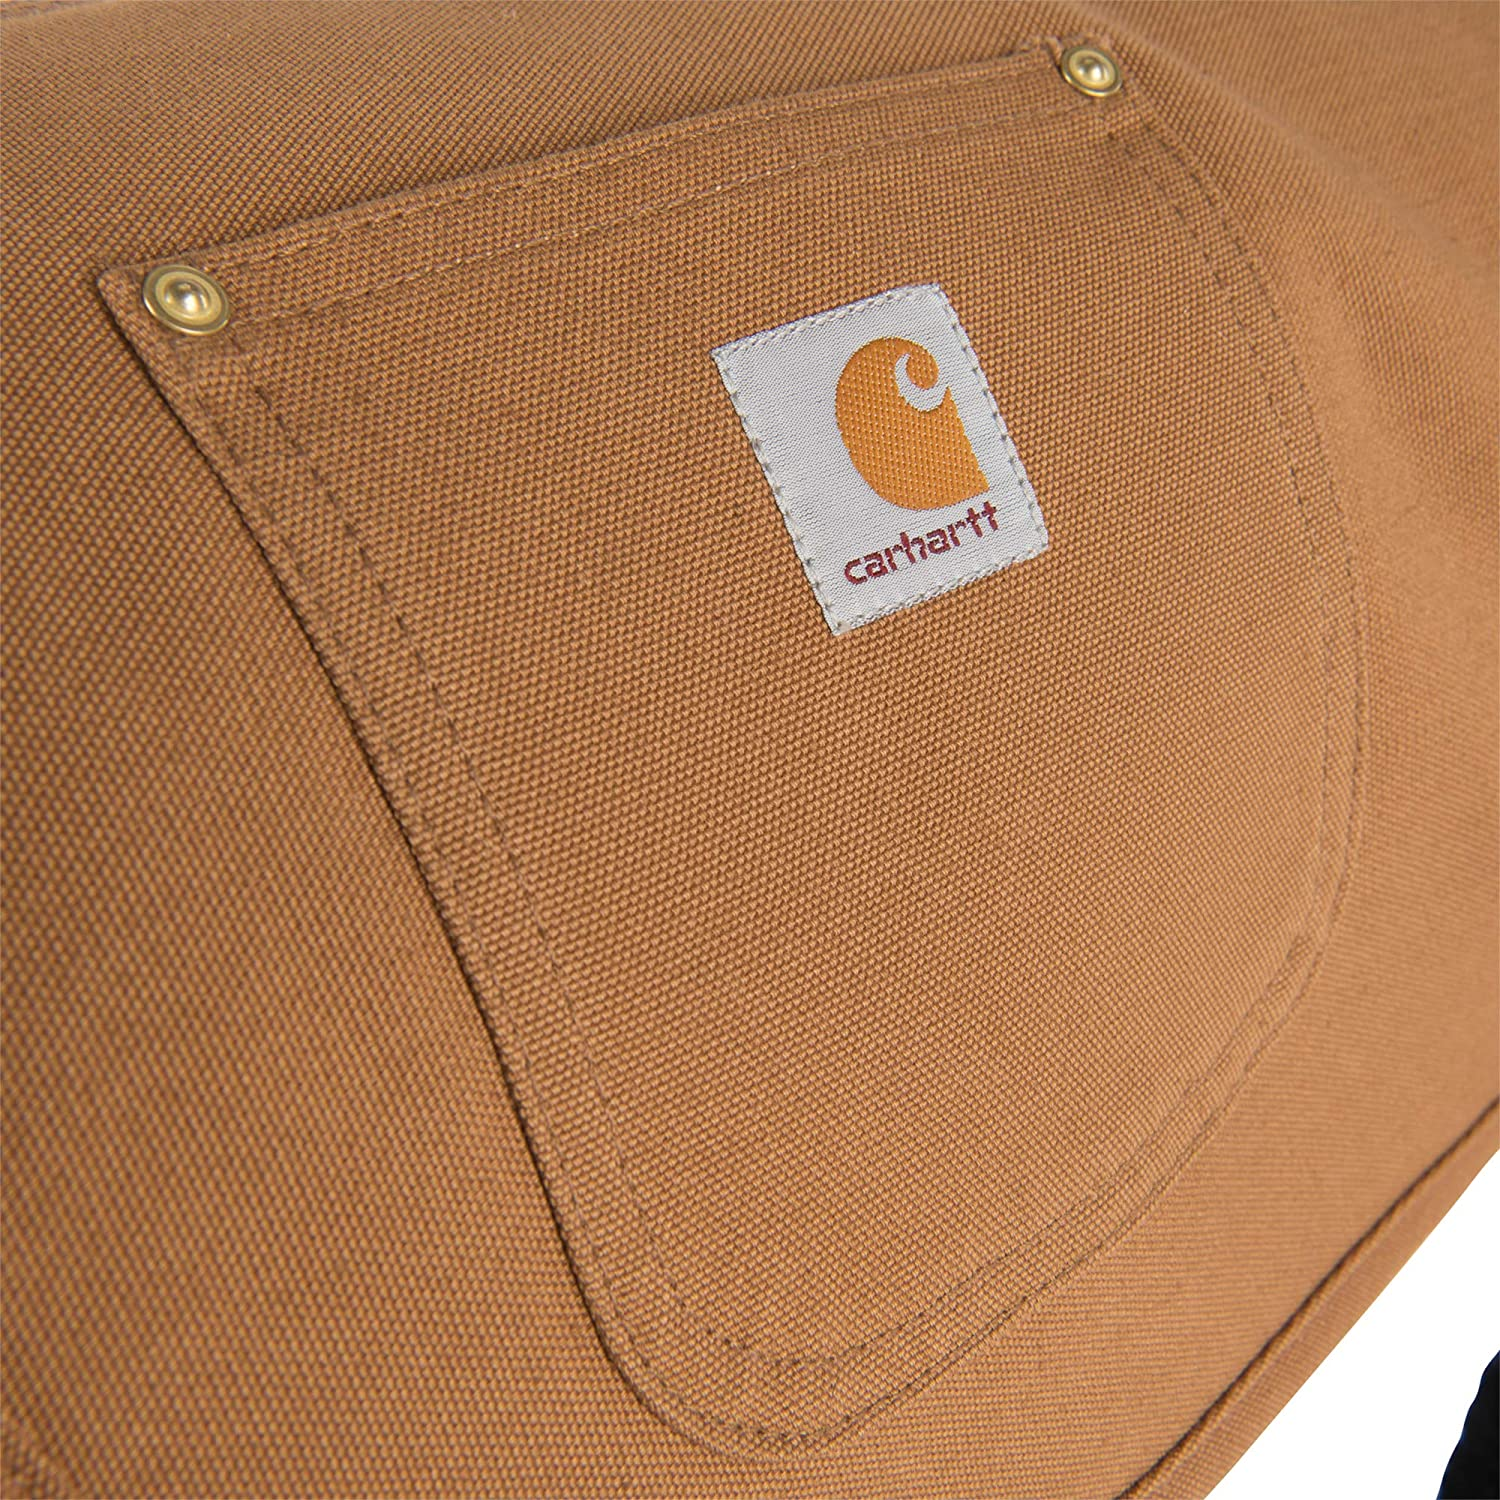 Carhartt Chore Coat Dog Vest Water Repellent Cotton Duck Canvas